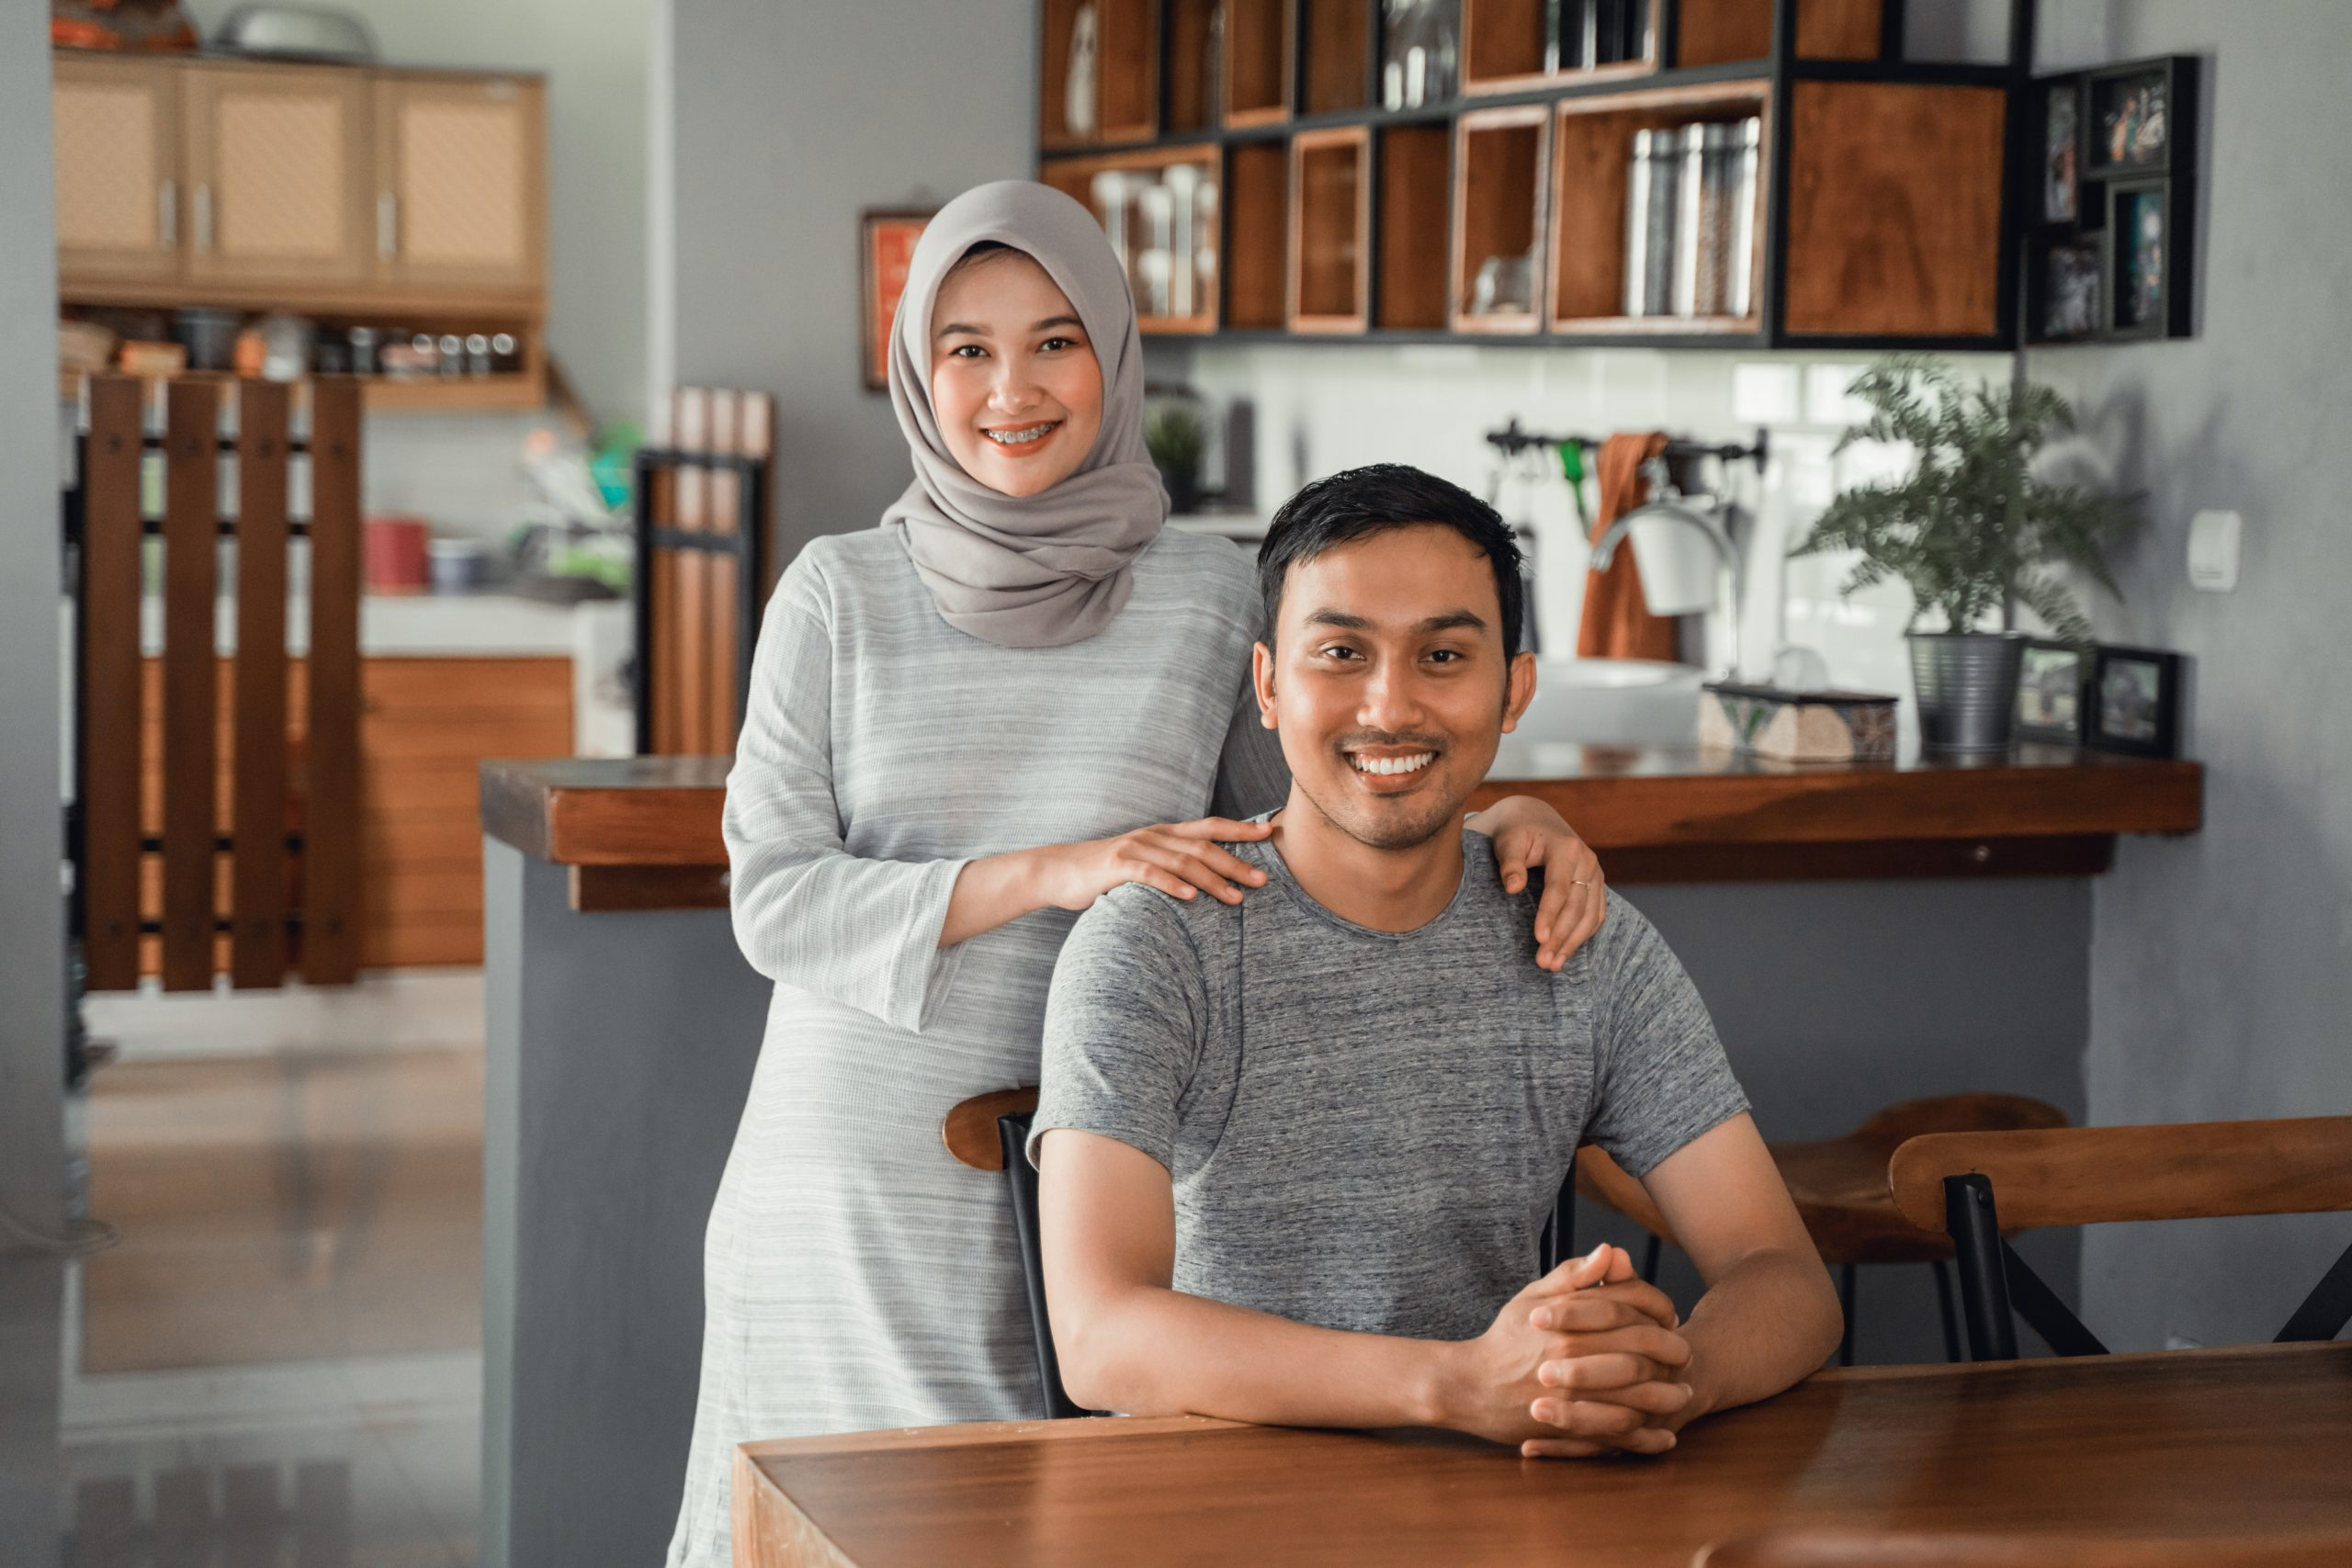 muslim-couple-sitting-dining-room-together-scaled.jpg